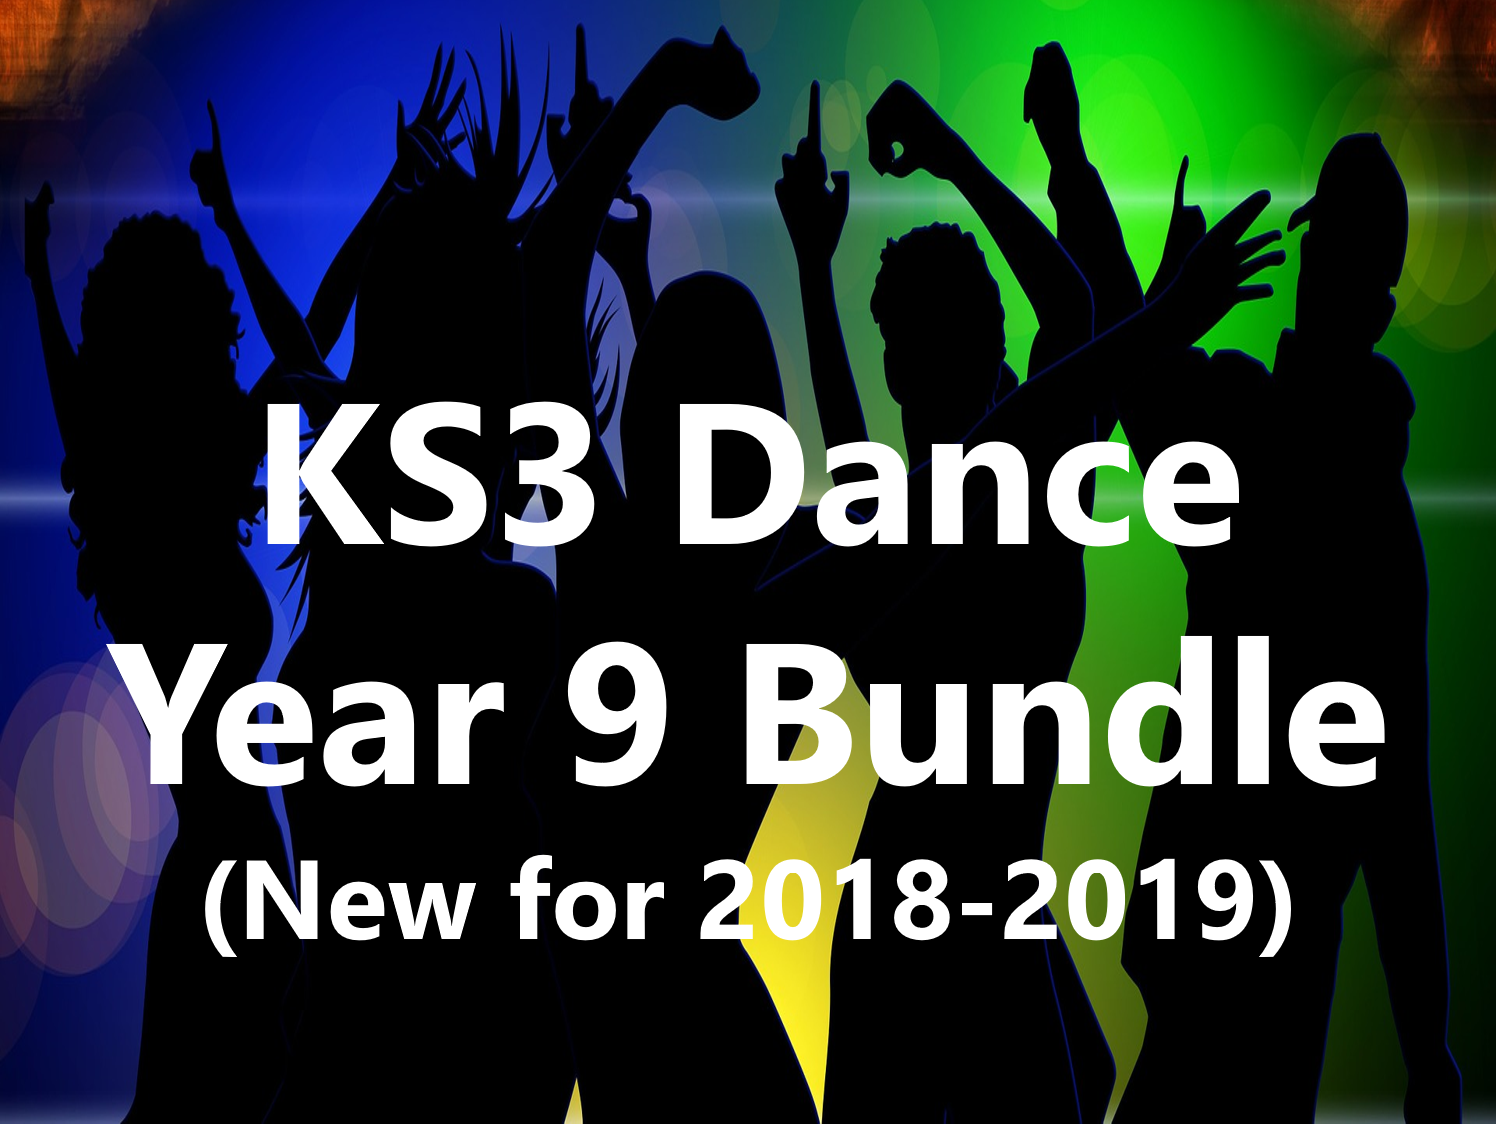 KS3 Dance: Year 9 Bundle (New for 2018-2019)